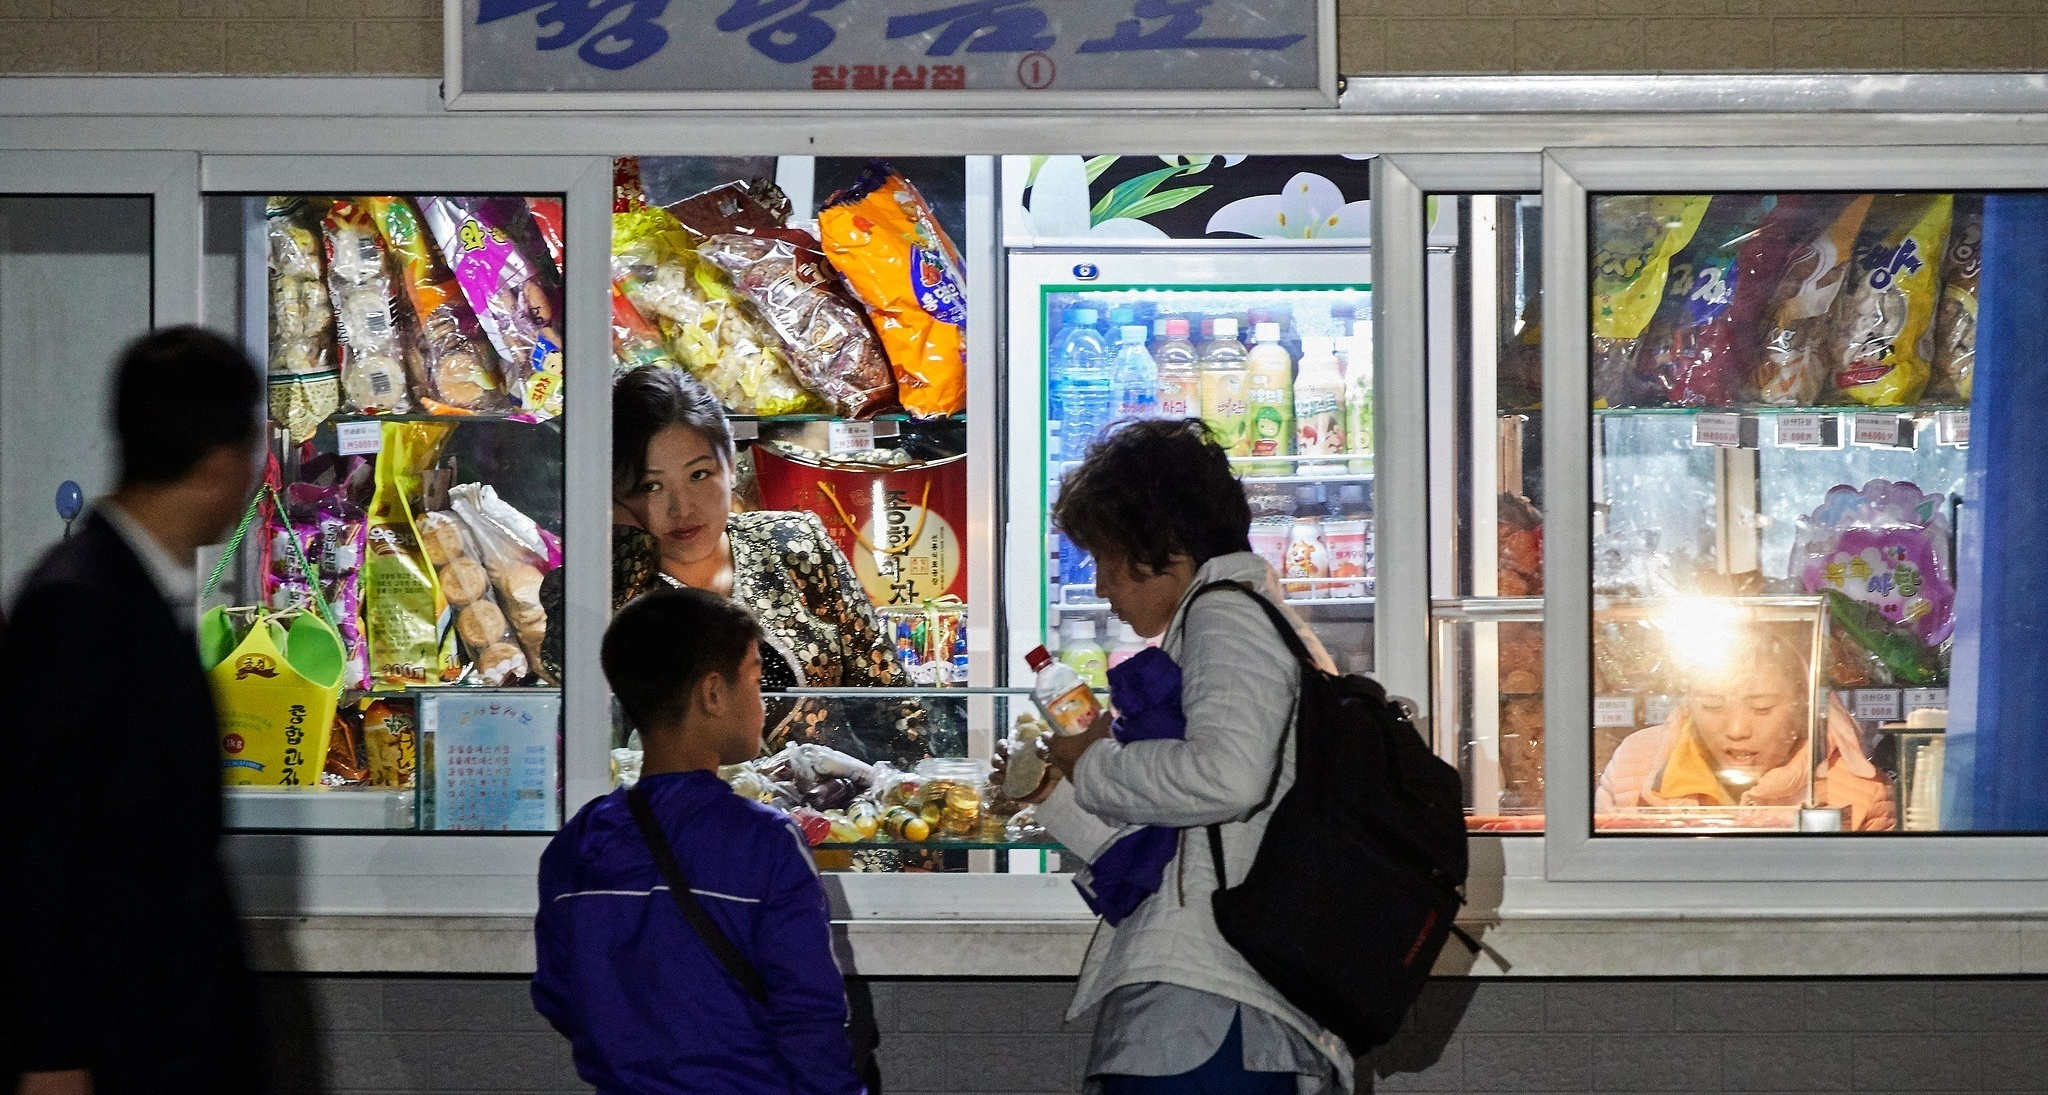 Empty shelves and food shortages: Why things are looking grim in North Korea